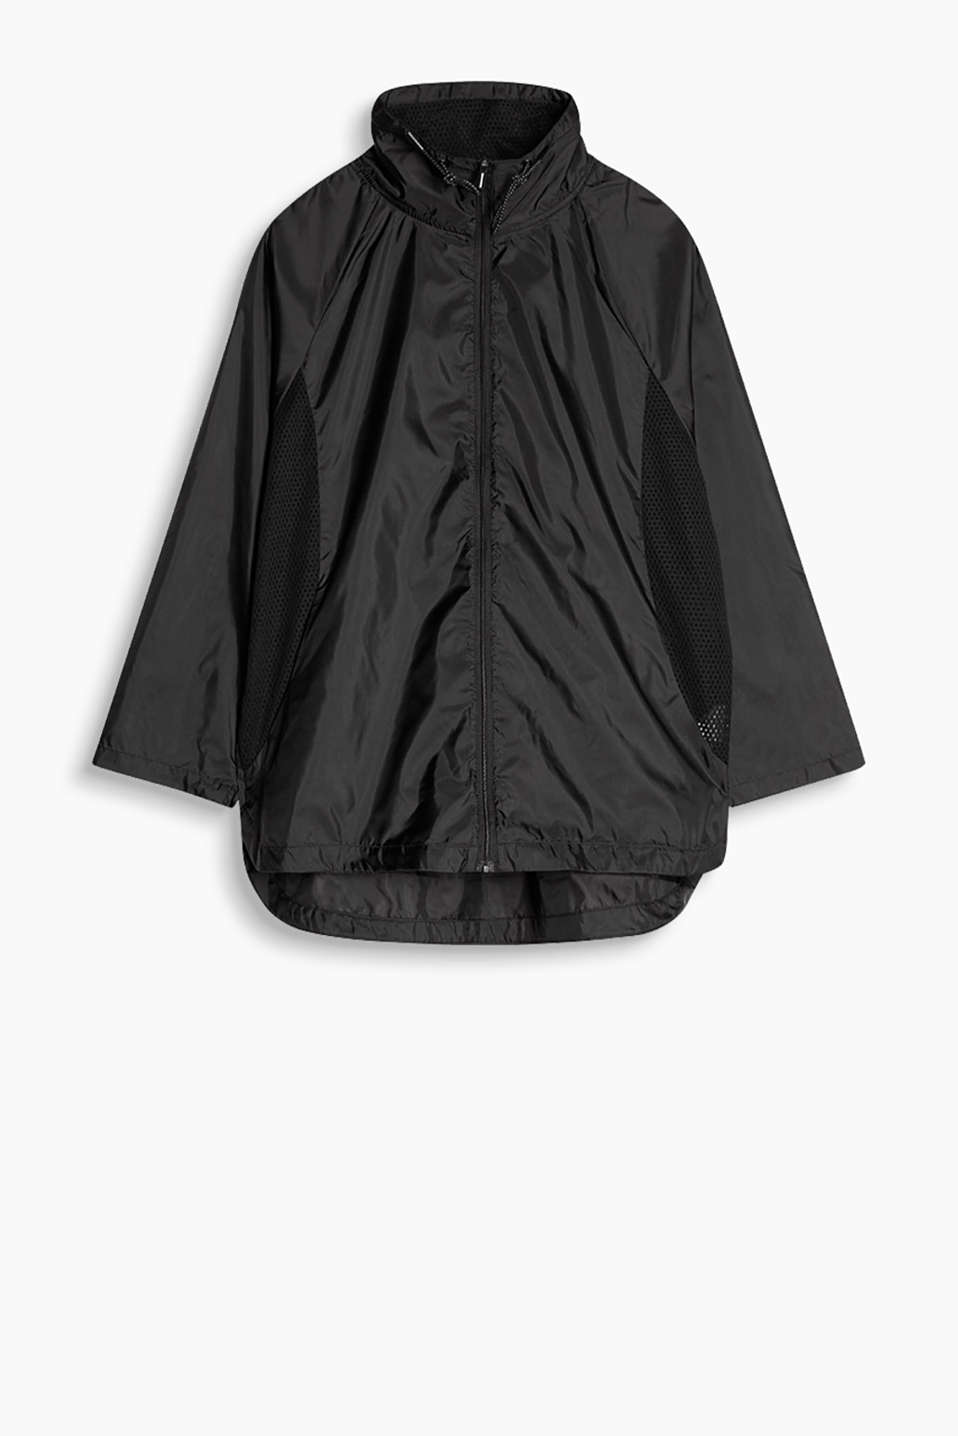 Ultra lightweight nylon jacket with mesh details and a reflective logo at the back